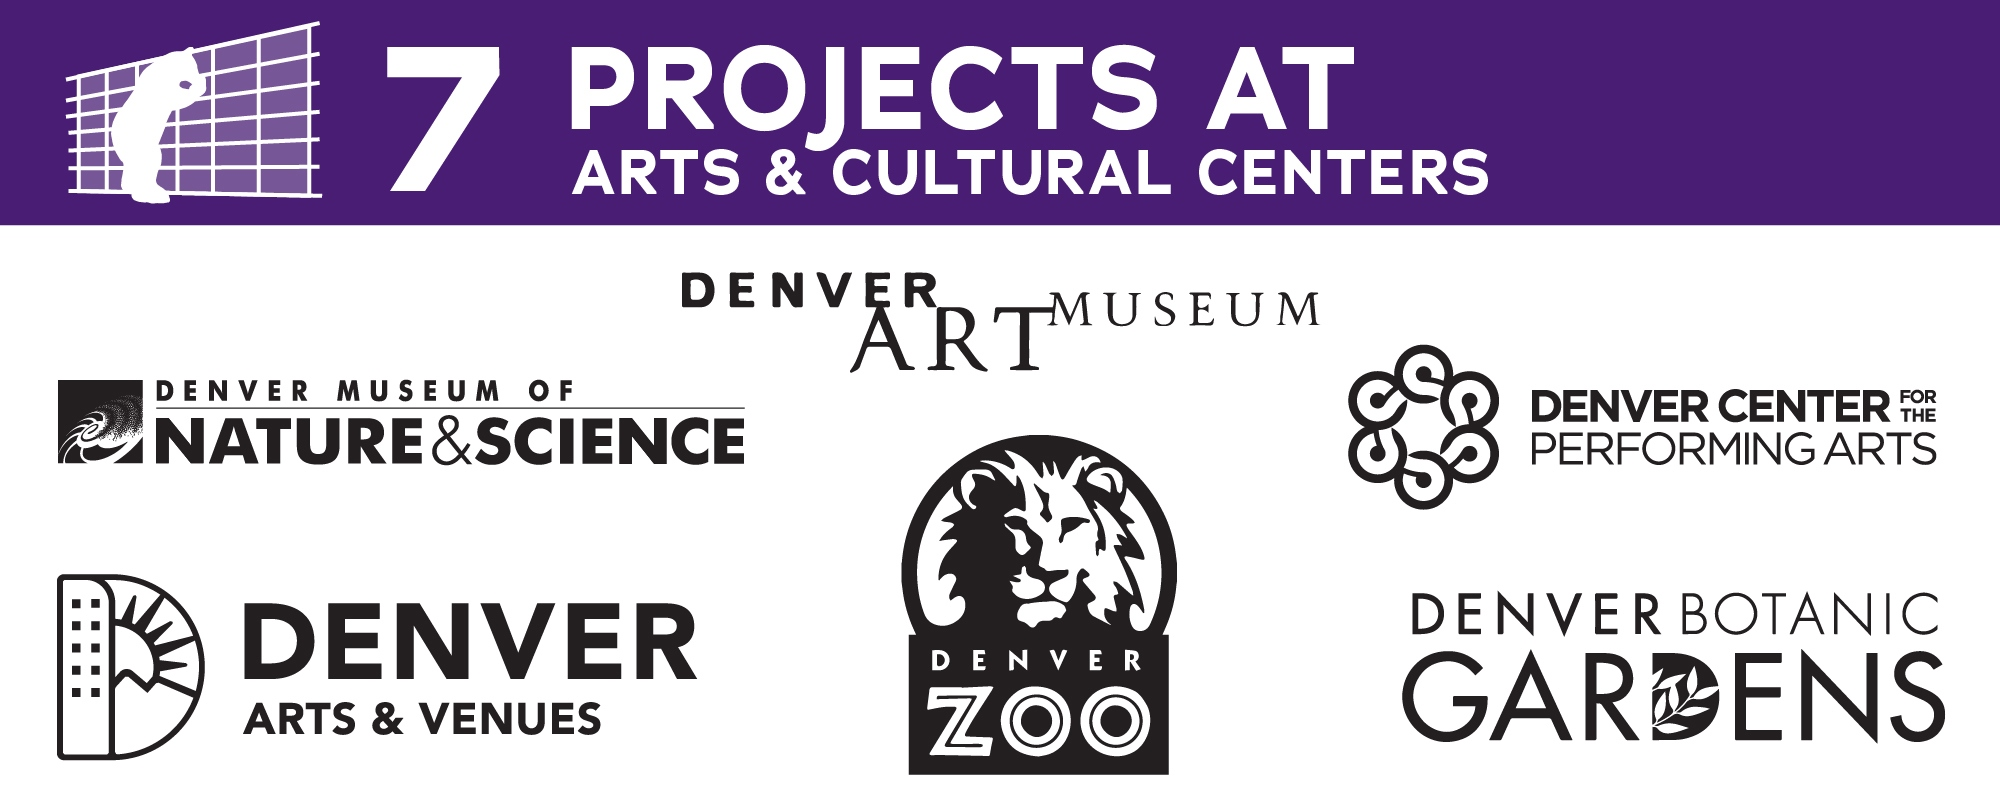 7 Projects at Arts and Cultural Centers graphic